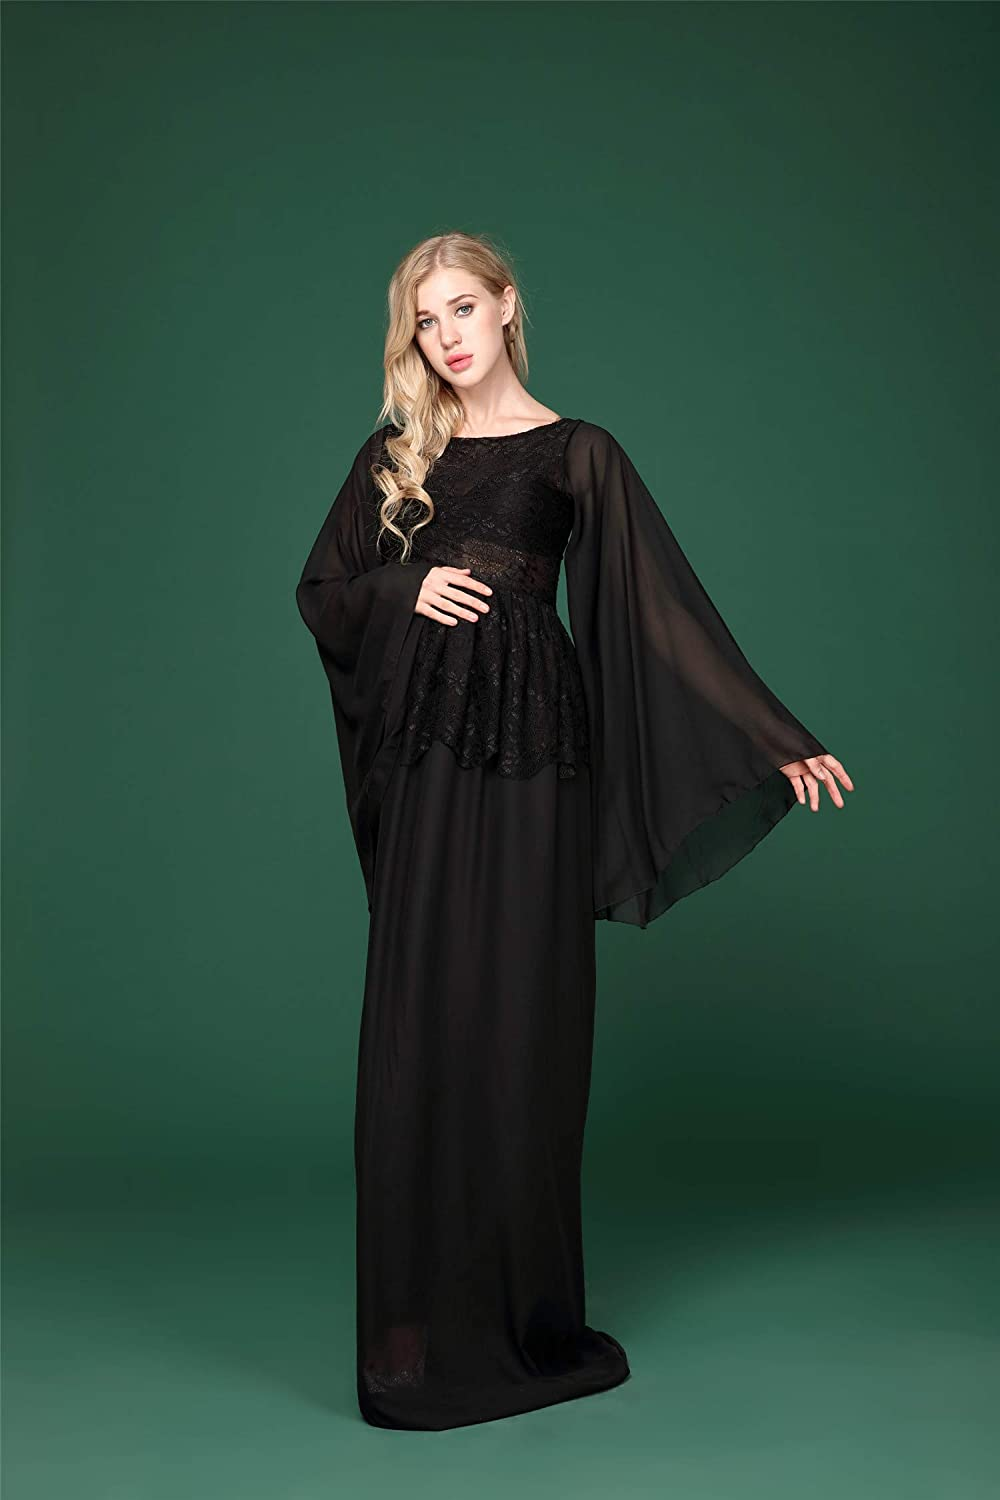 Elegant Photography Maternity Wrap Dress Pregnant Women Long Maxi Gown Floral Lace Long Sleeve Black